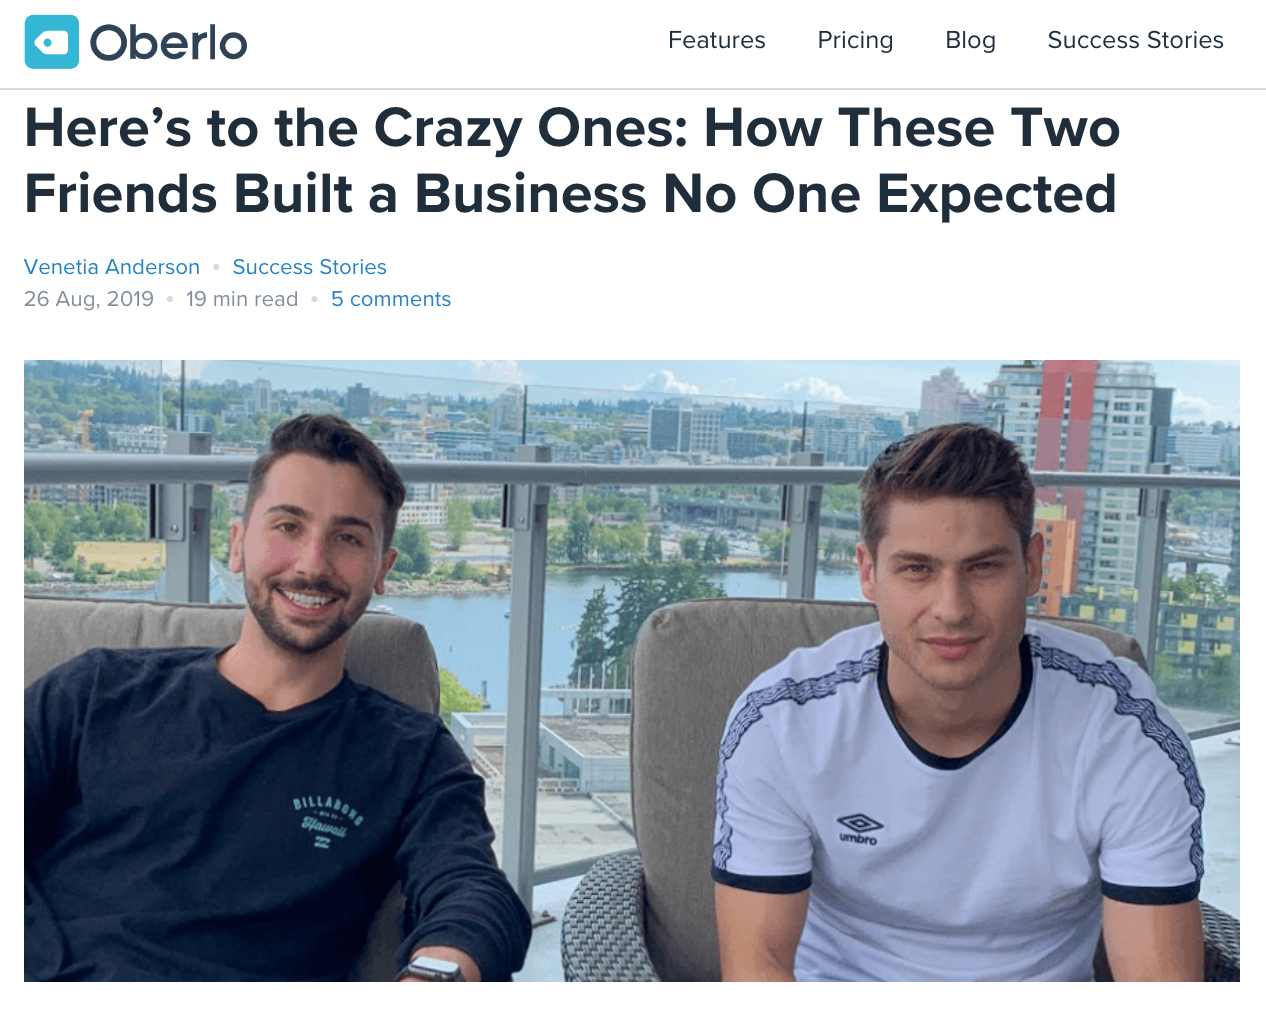 Read about how we took our eCommerce business from $0 to $350,00+ USD in sales in 9 months. All on a bootstrapped budget!